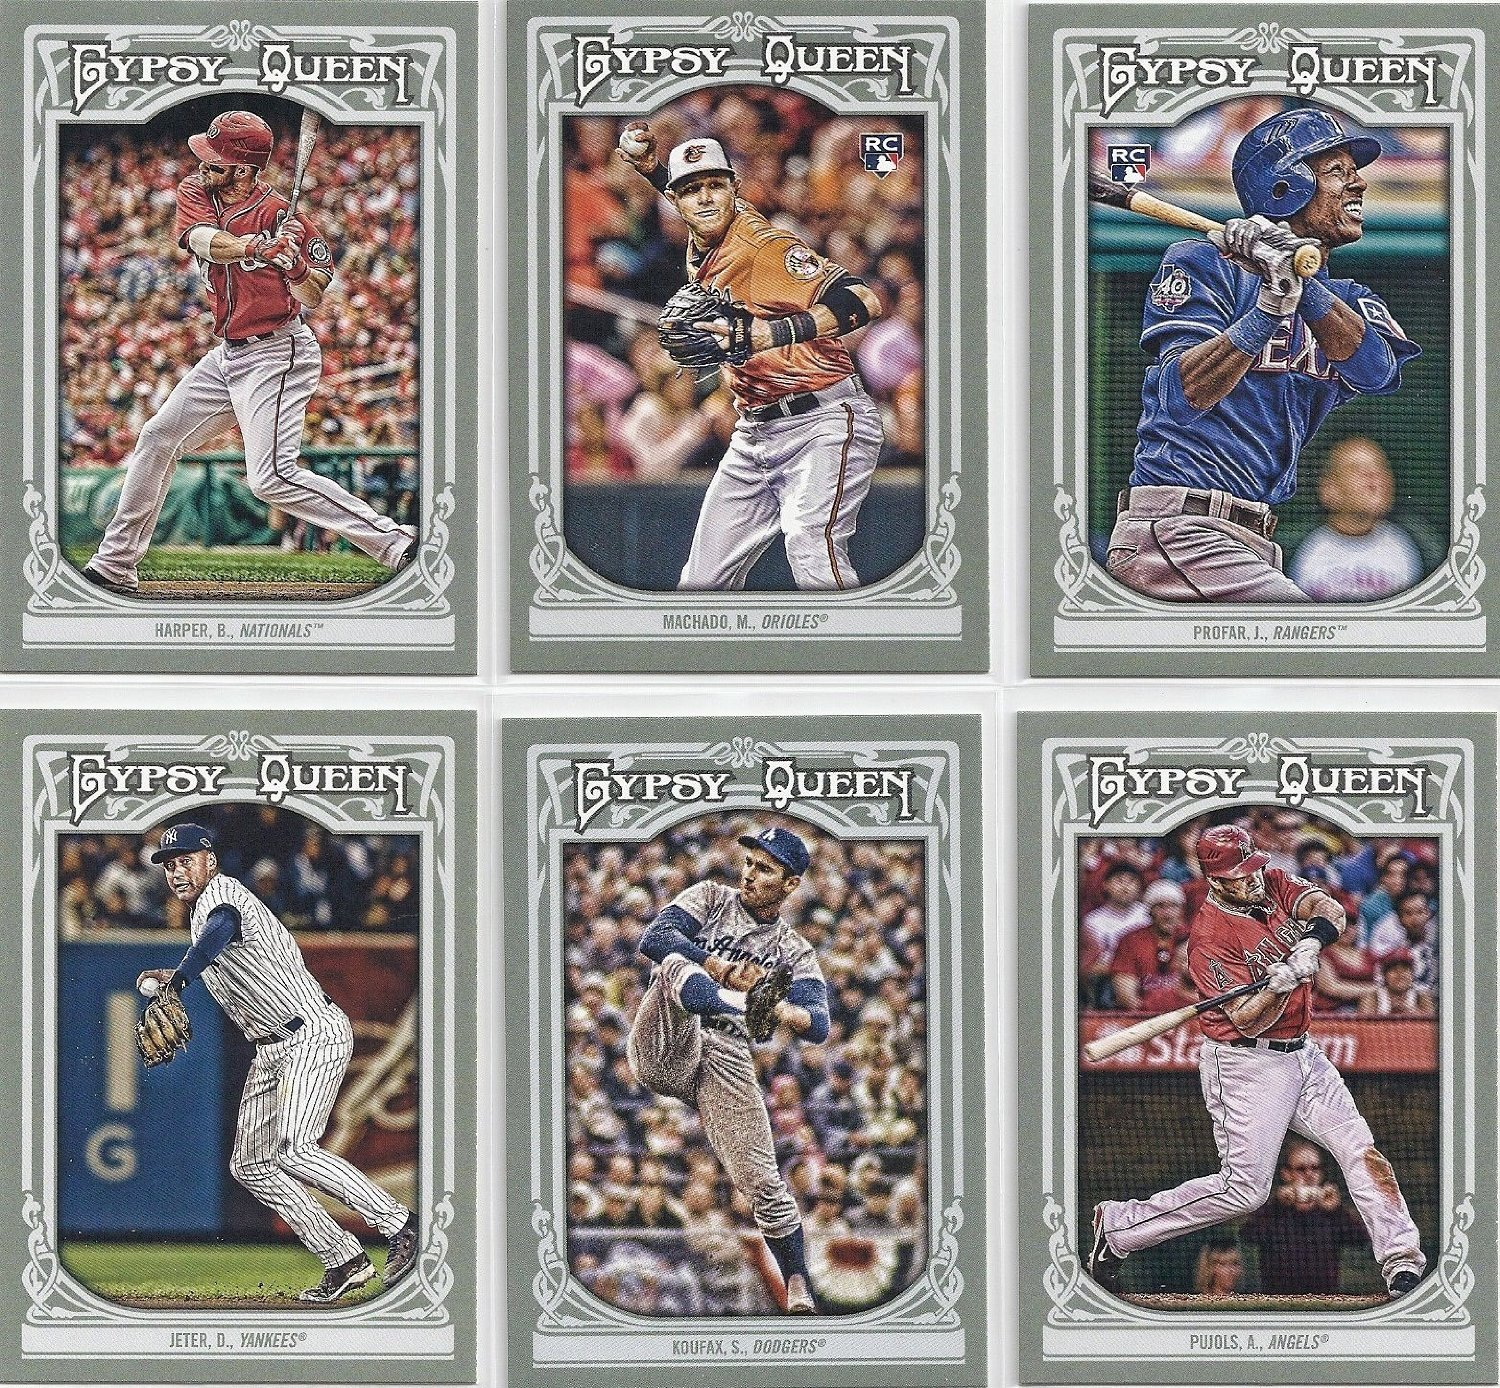 2013 Topps Gypsy Queen Baseball Series Complete Mint Hand Collated Basic 300 Card Set. Loaded with Your Favorite Stars and Tons of Hall of Famers Including Babe Ruth, Sandy Koufax, Jackie Robinson, Ty Cobb, Buster Posey, Tom Seaver, Lou Gehrig, Cal Ripken Jr., Ken Griffey Jr., Derek Jeter, Stephen